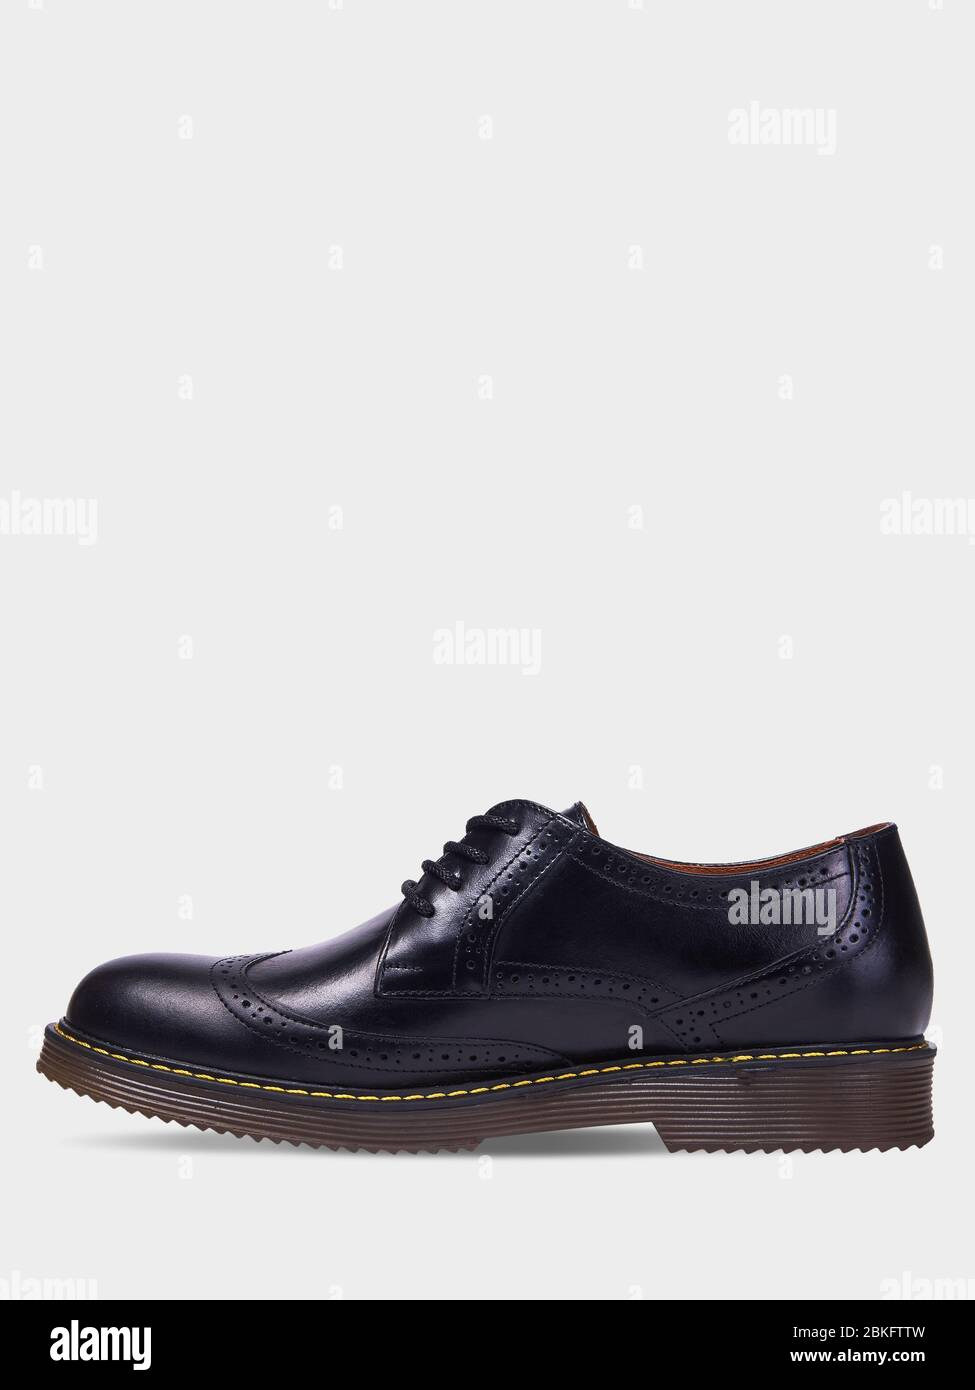 No Black Soled Shoes High Resolution